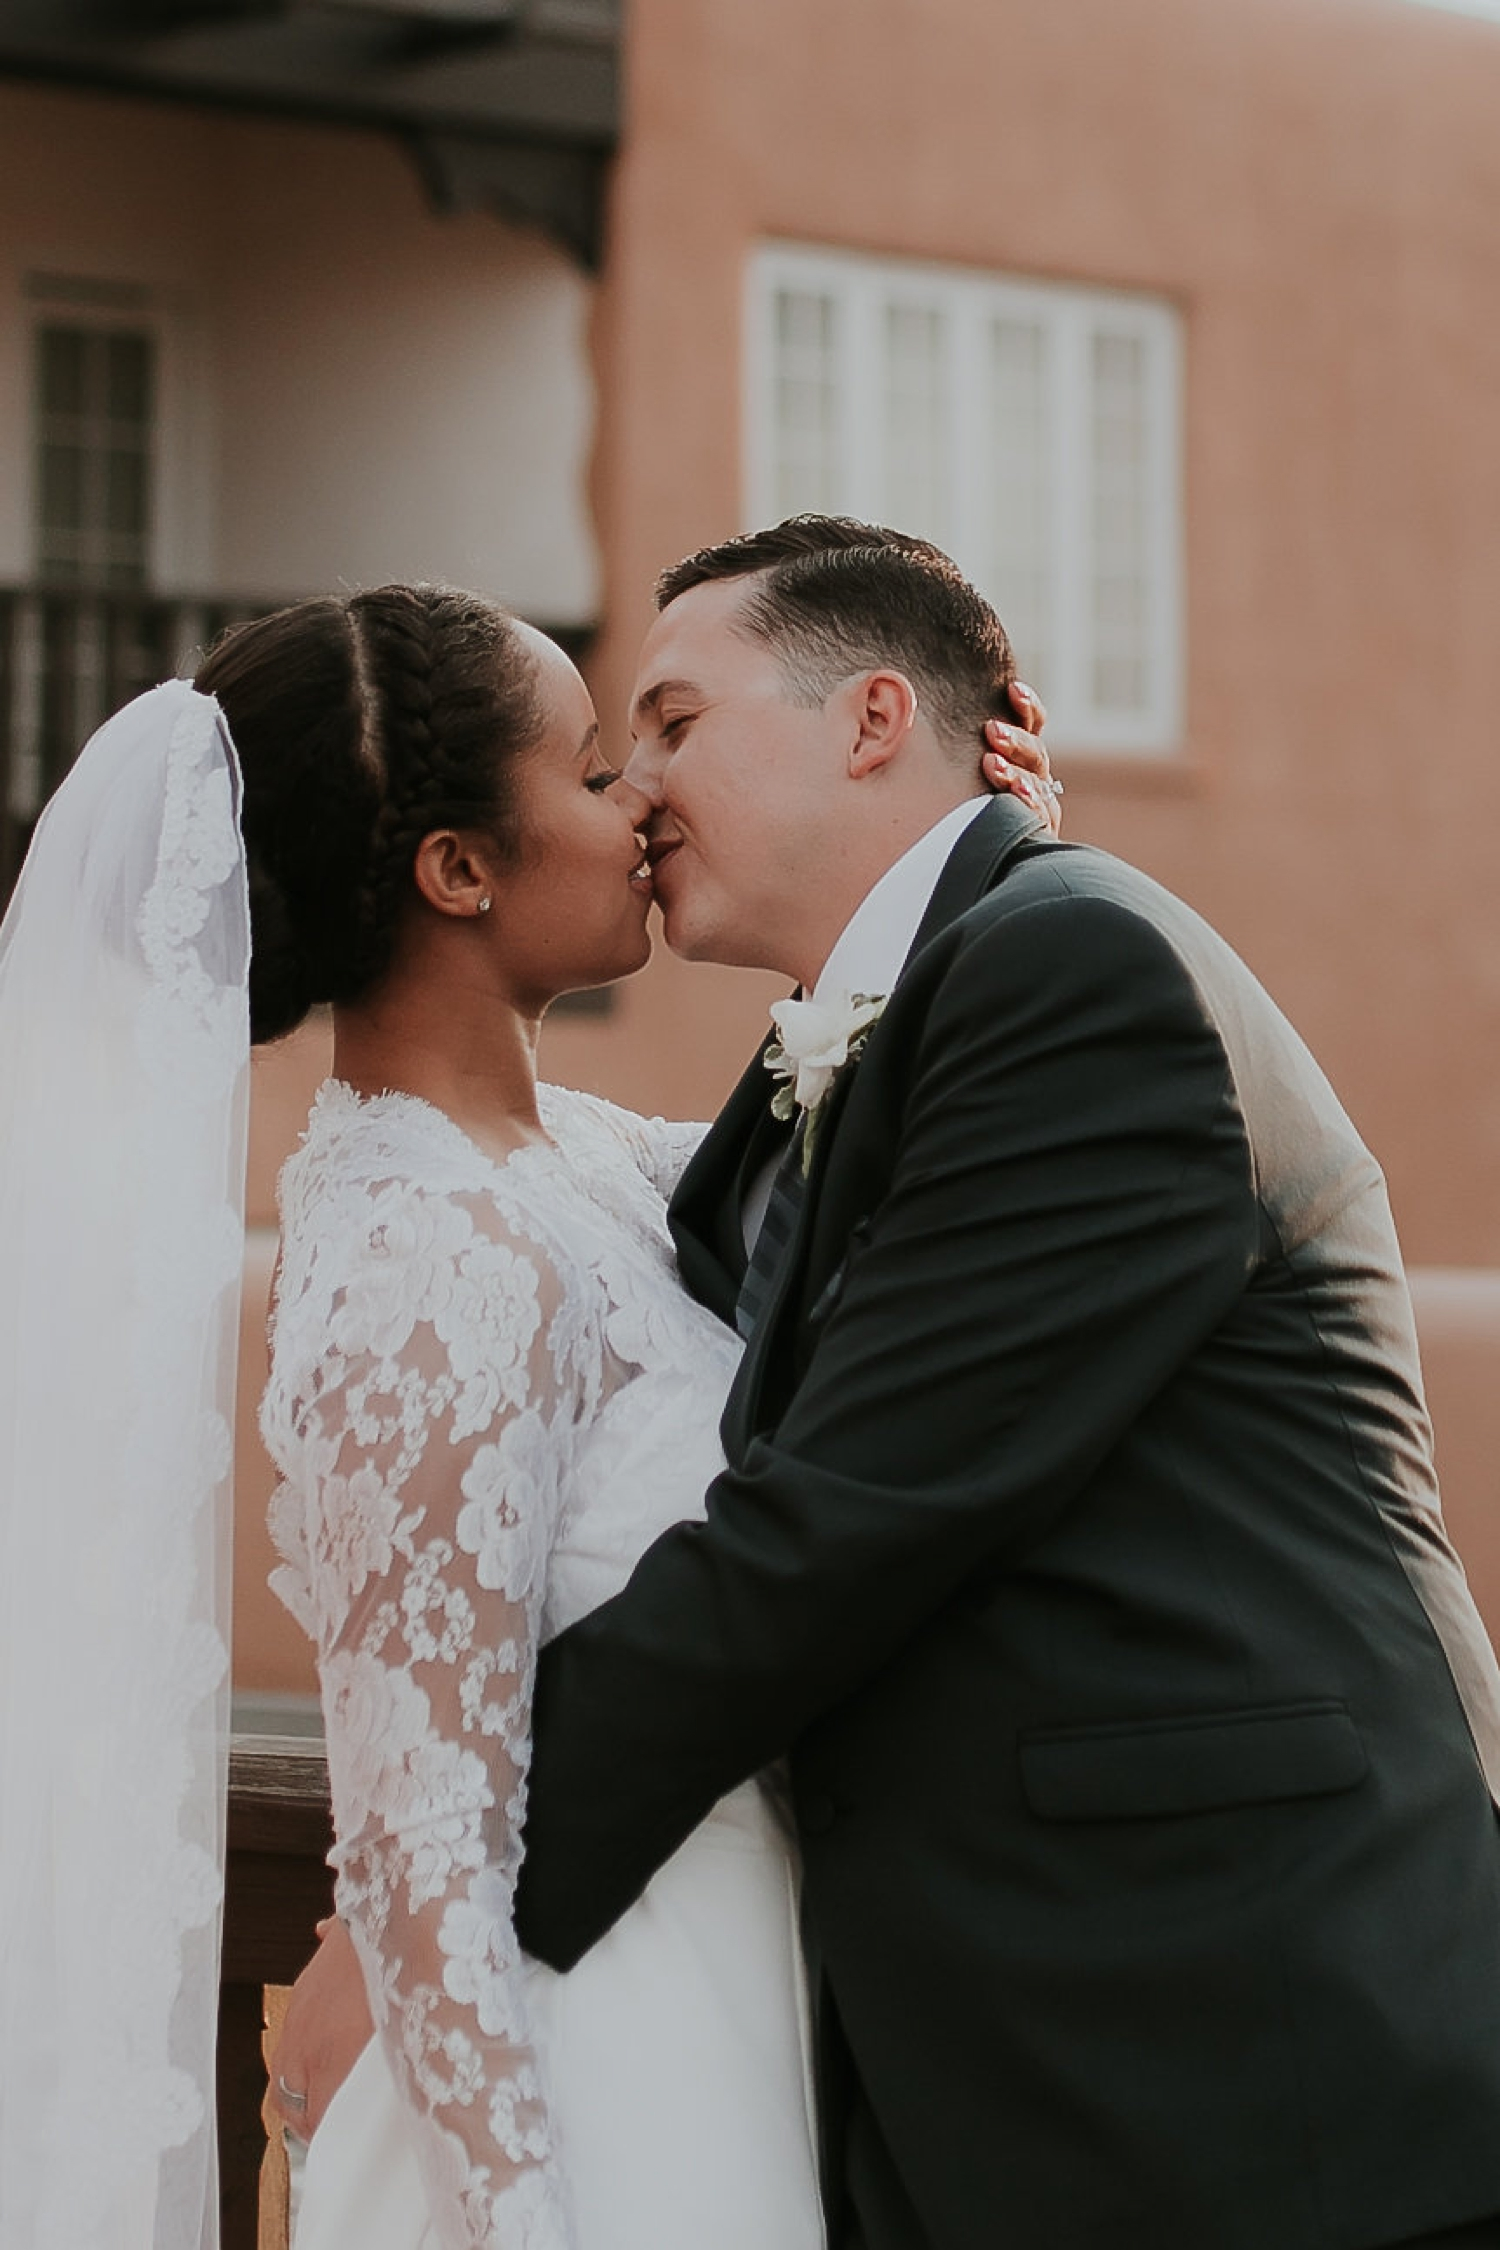 Alicia+lucia+photography+-+albuquerque+wedding+photographer+-+santa+fe+wedding+photography+-+new+mexico+wedding+photographer+-+new+mexico+engagement+-+la+fonda+new+mexico+wedding+-+la+fonda+fall+wedding_0068.jpg